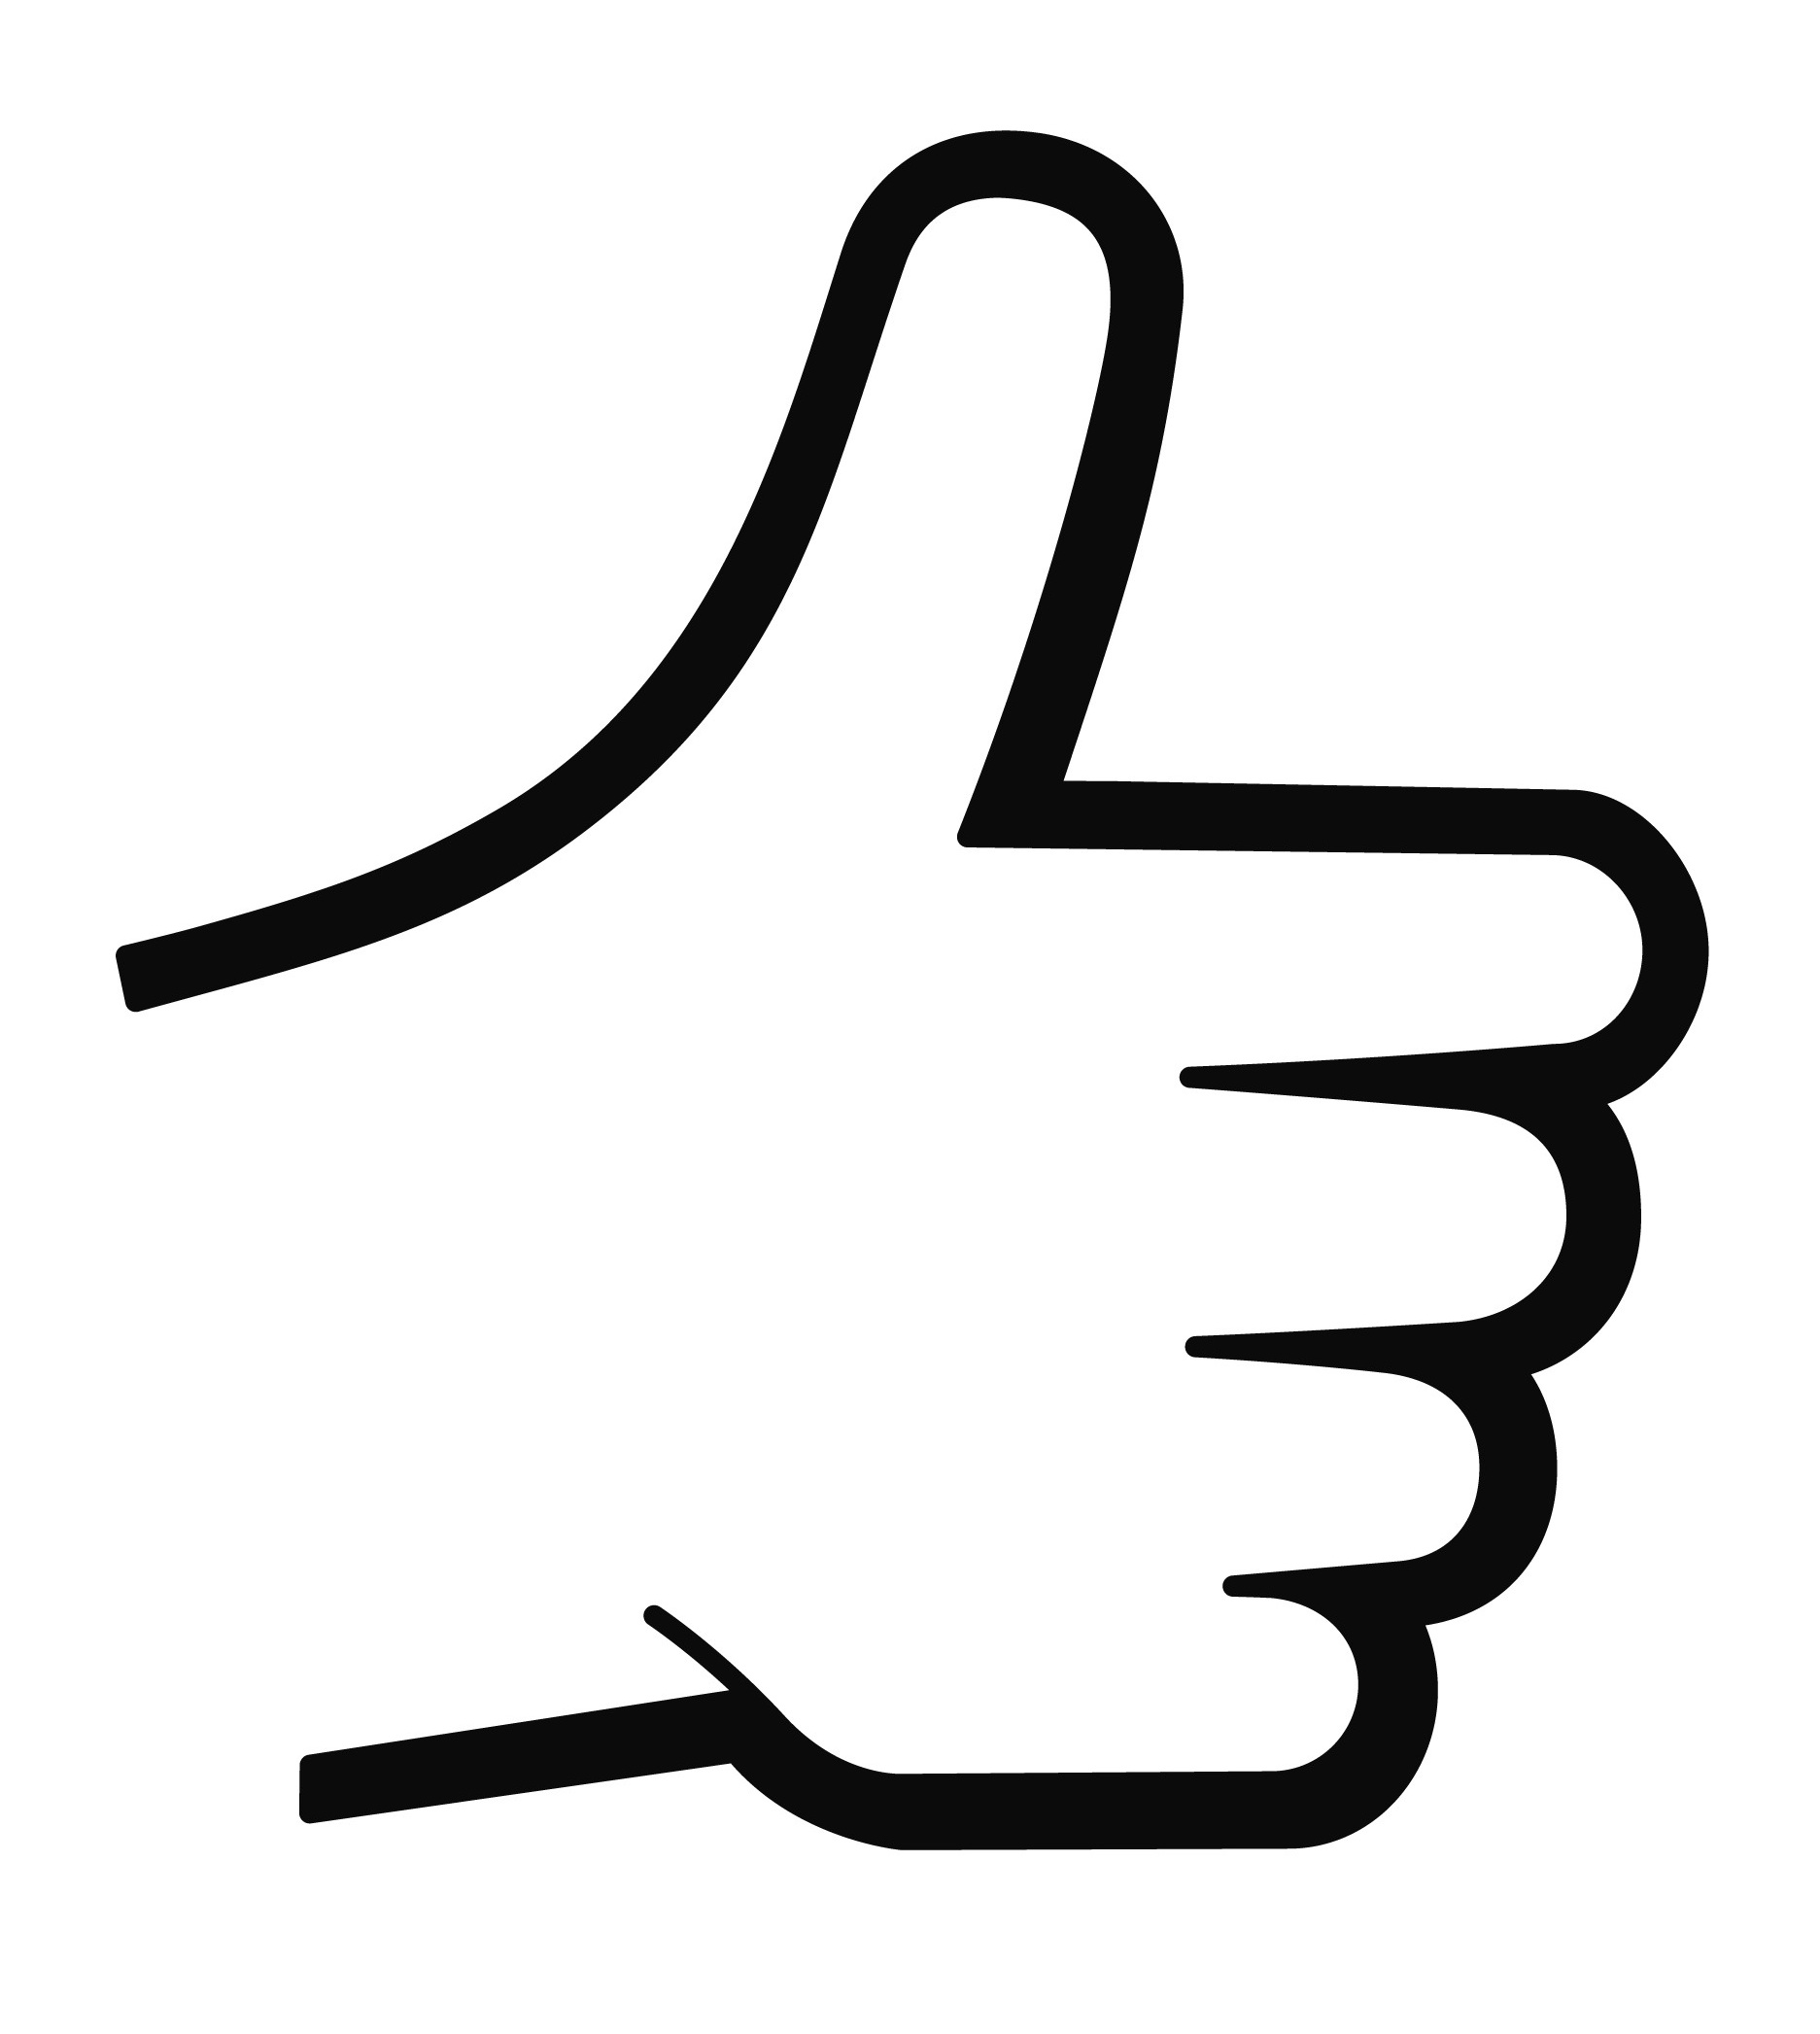 thumbs-up-linedrawing